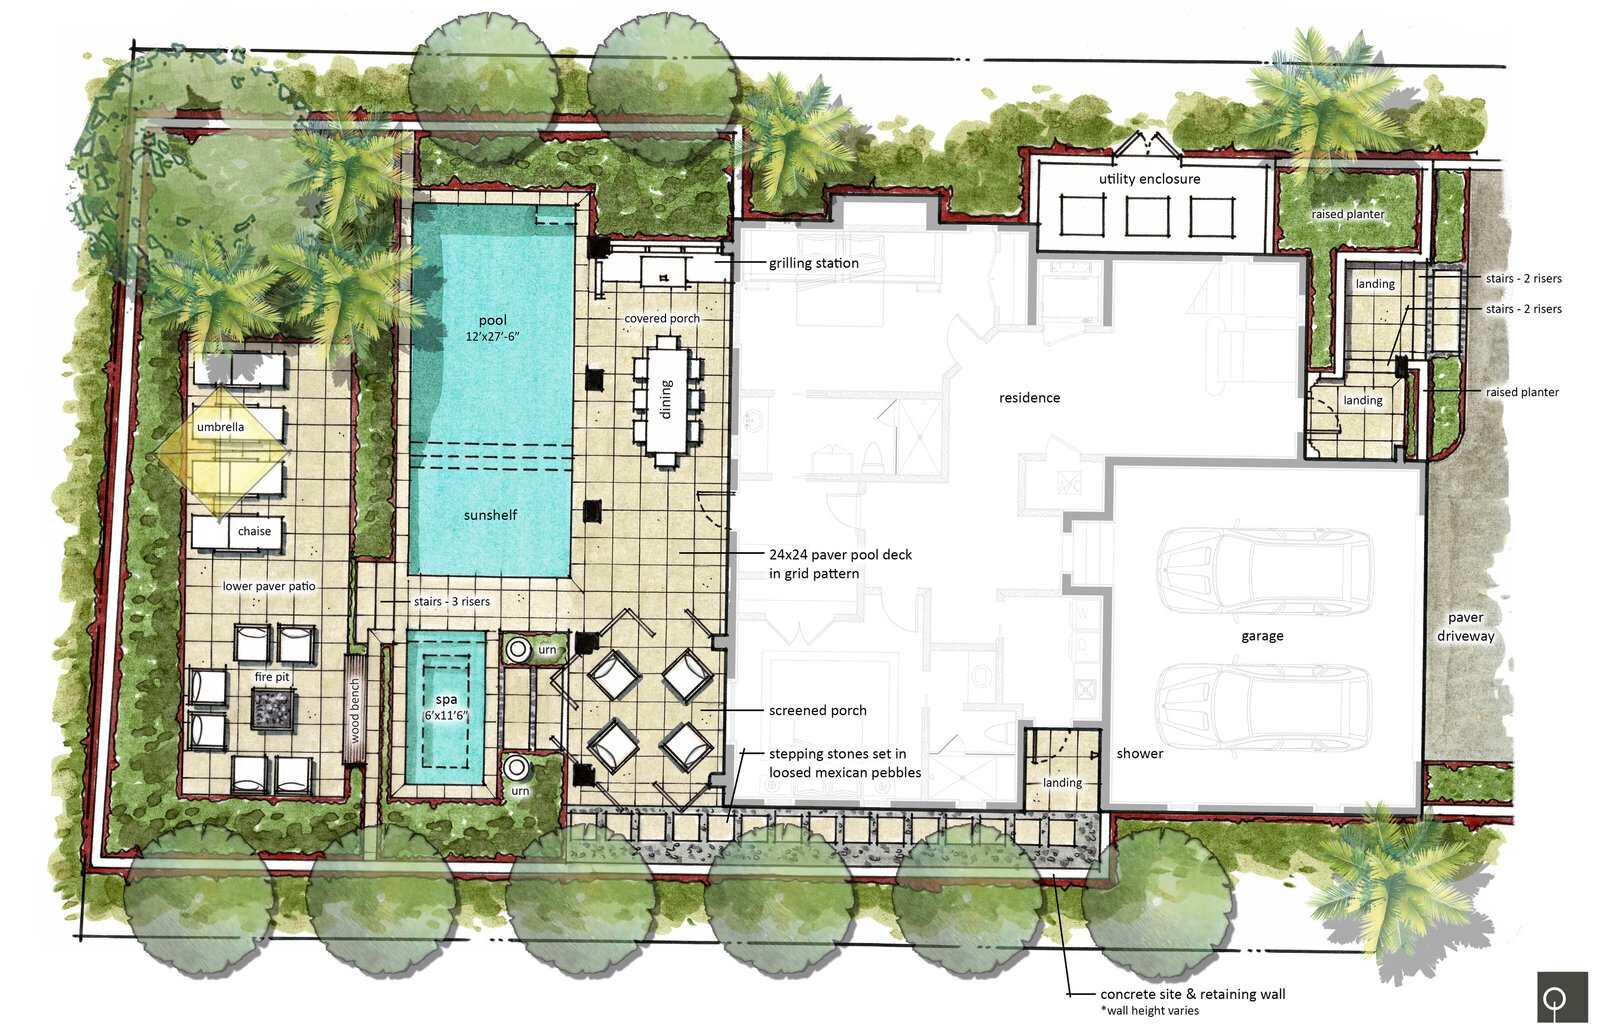 Goodnight Residence - Schematic Design